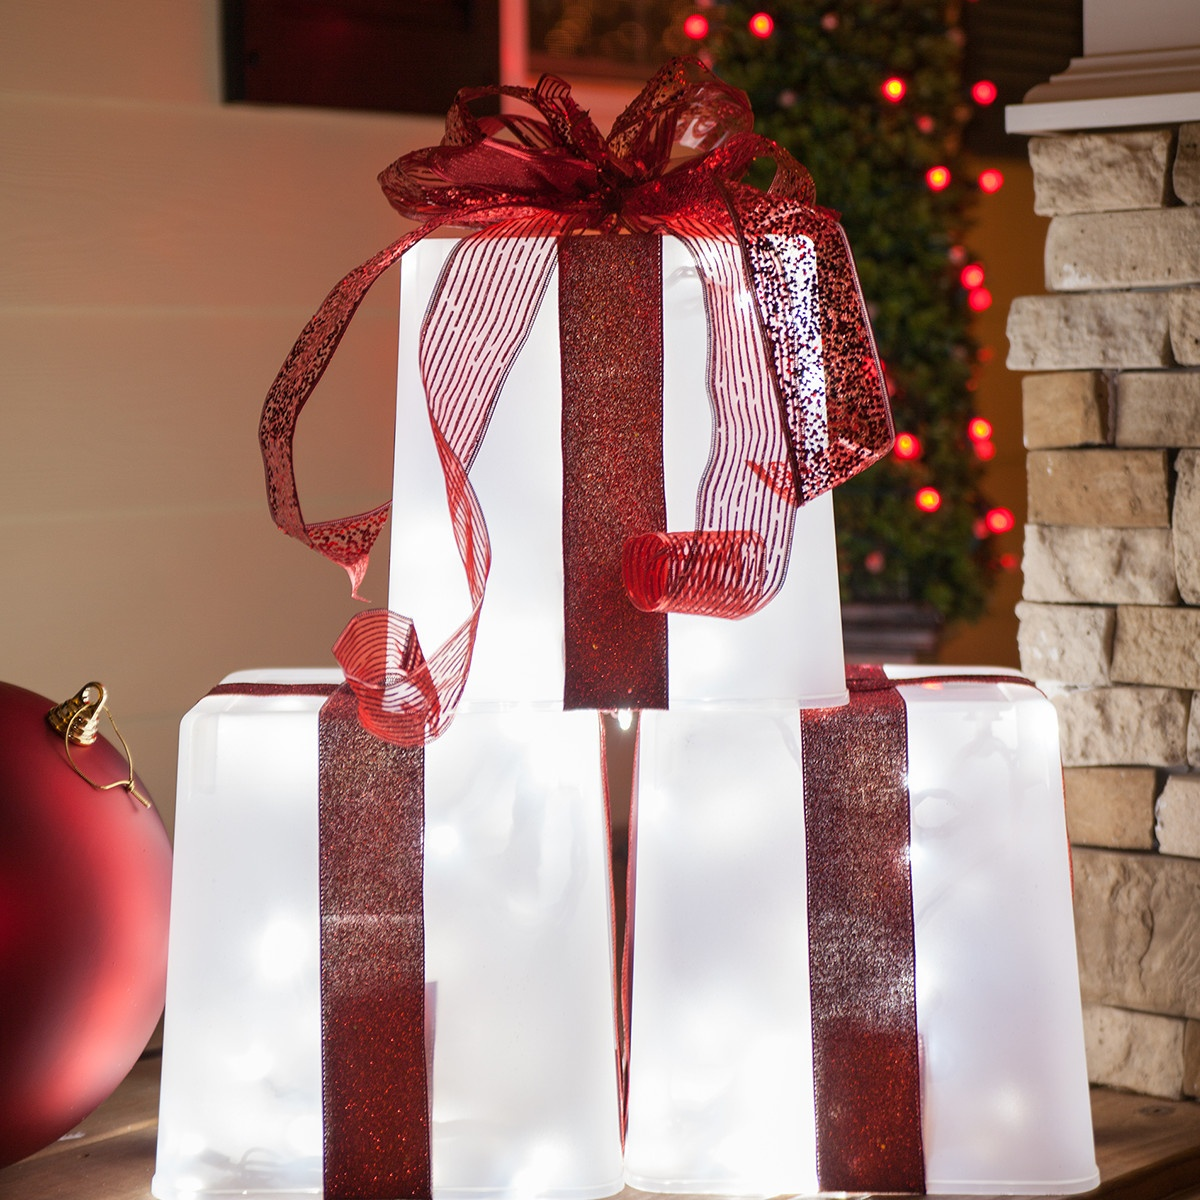 Best Diy Christmas Decorations 4 Lighted Gift Boxes This Month